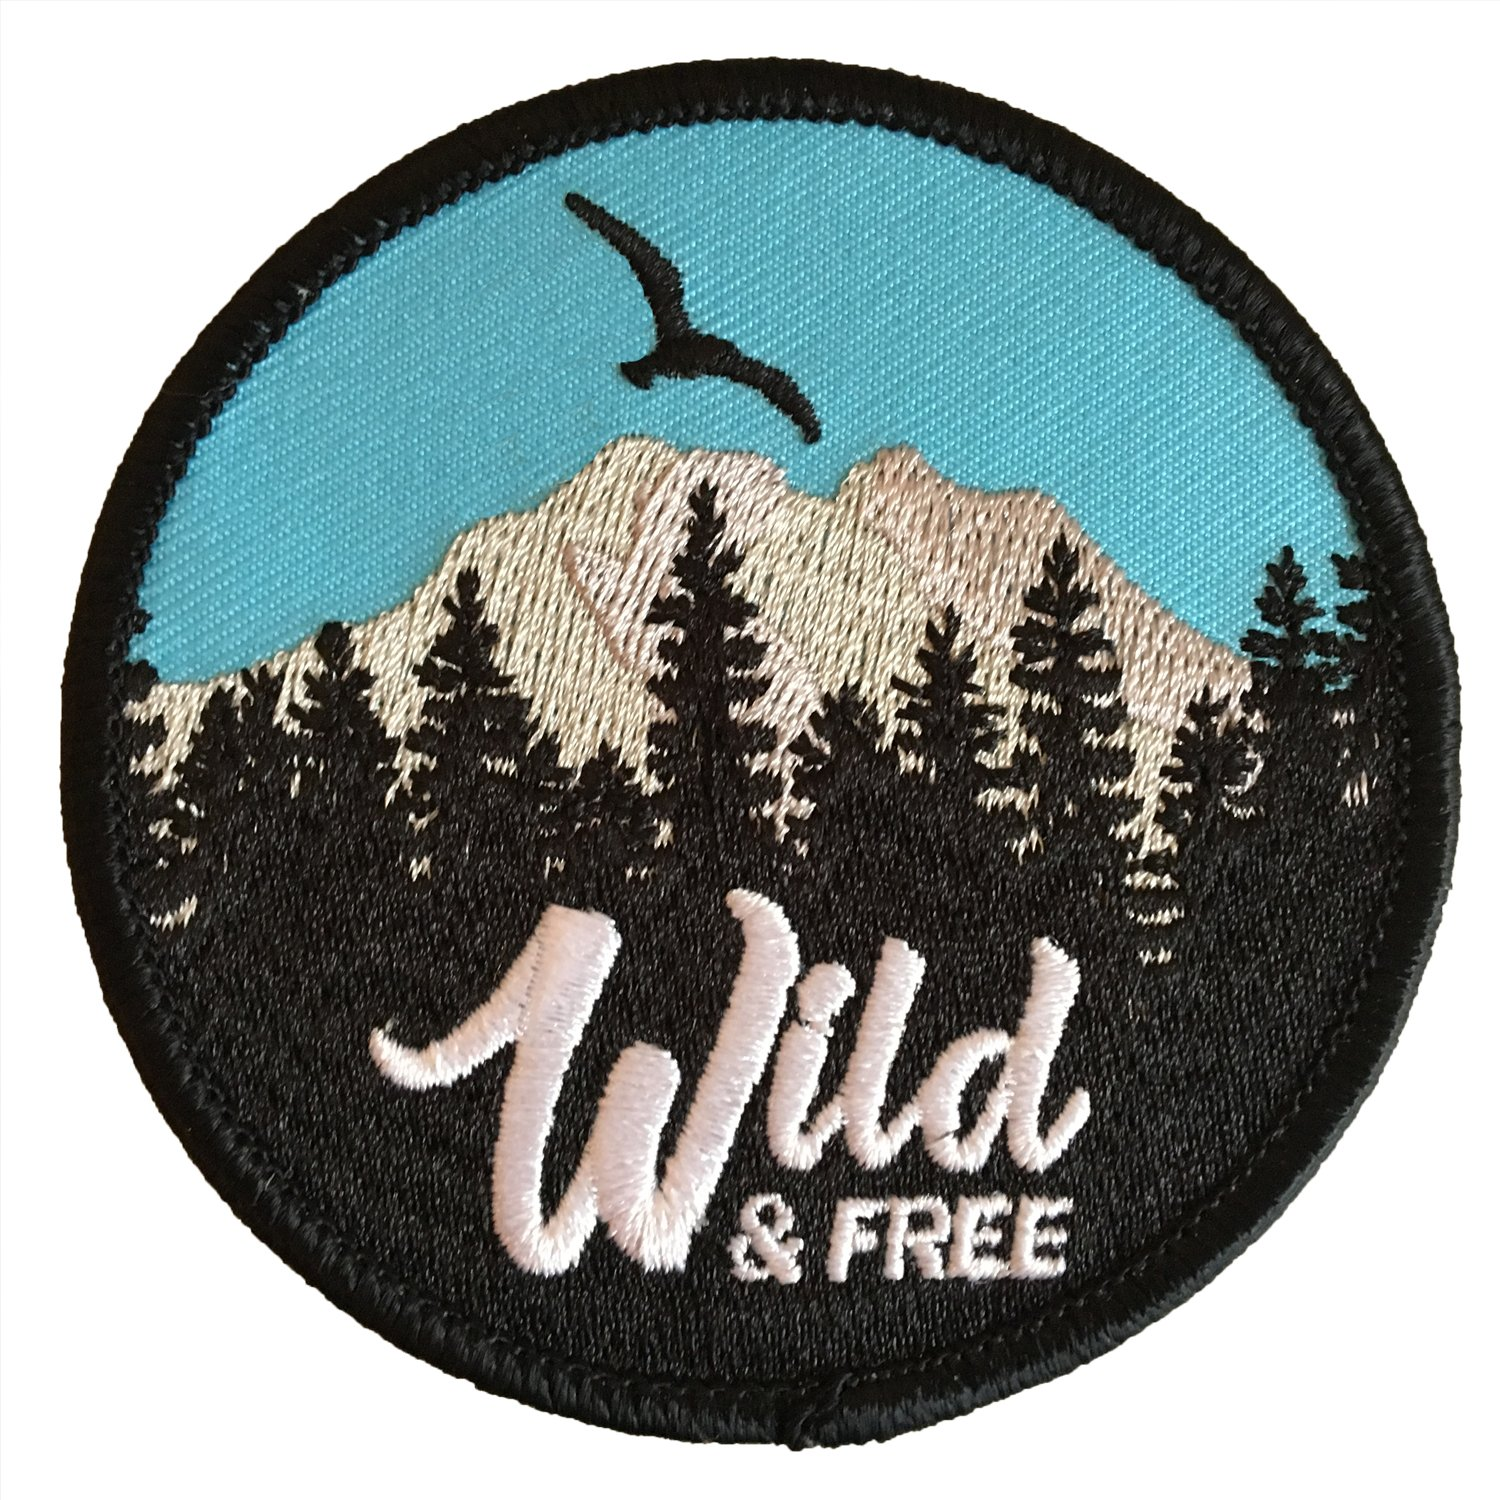 Wild & Free Iron on Patch for Jackets, Backpacks, Jeans, Hats, and Clothing - Iron on Patches Hatjoy